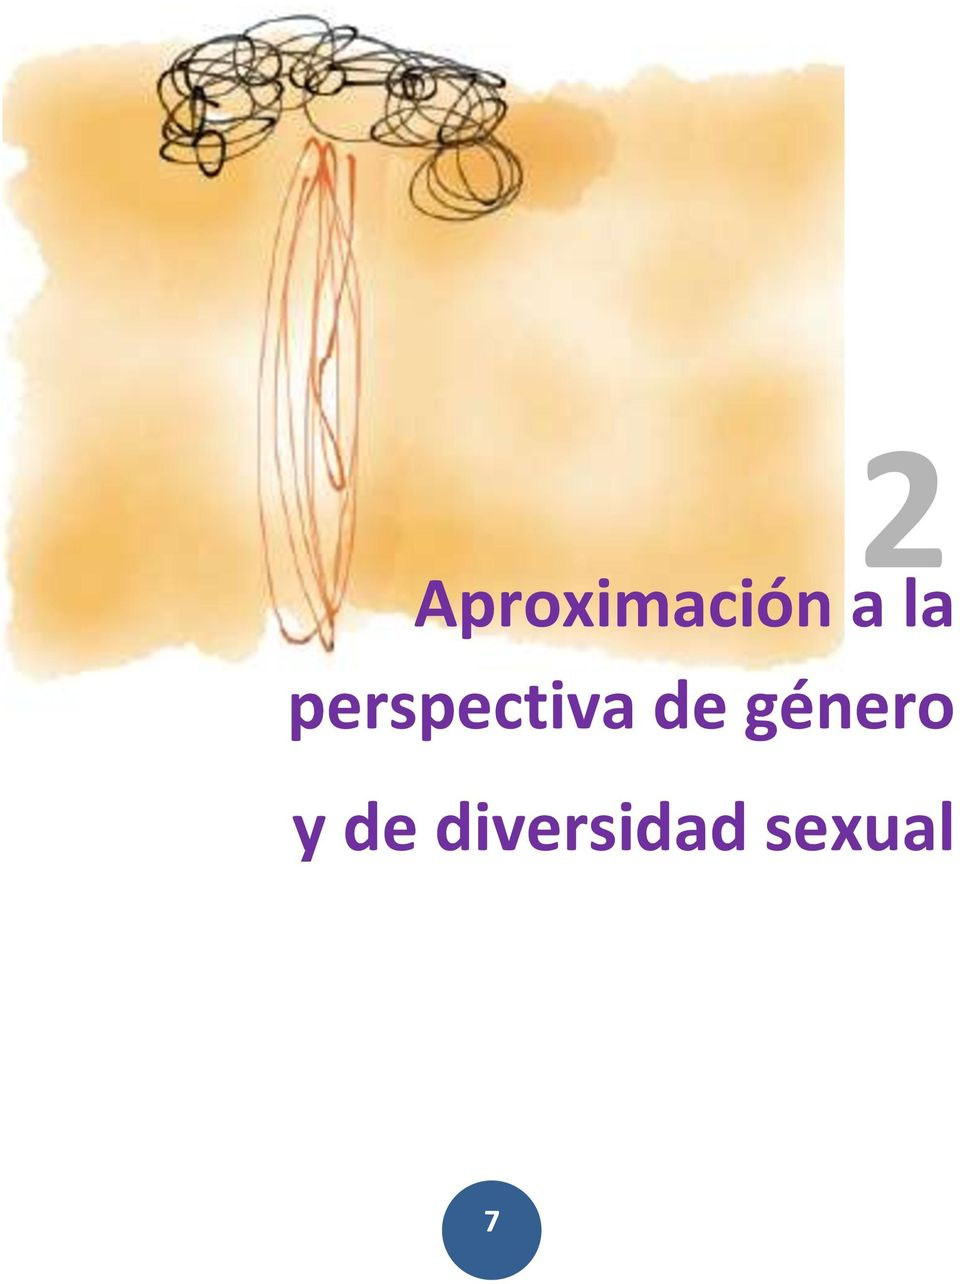 y de diversidad sexual